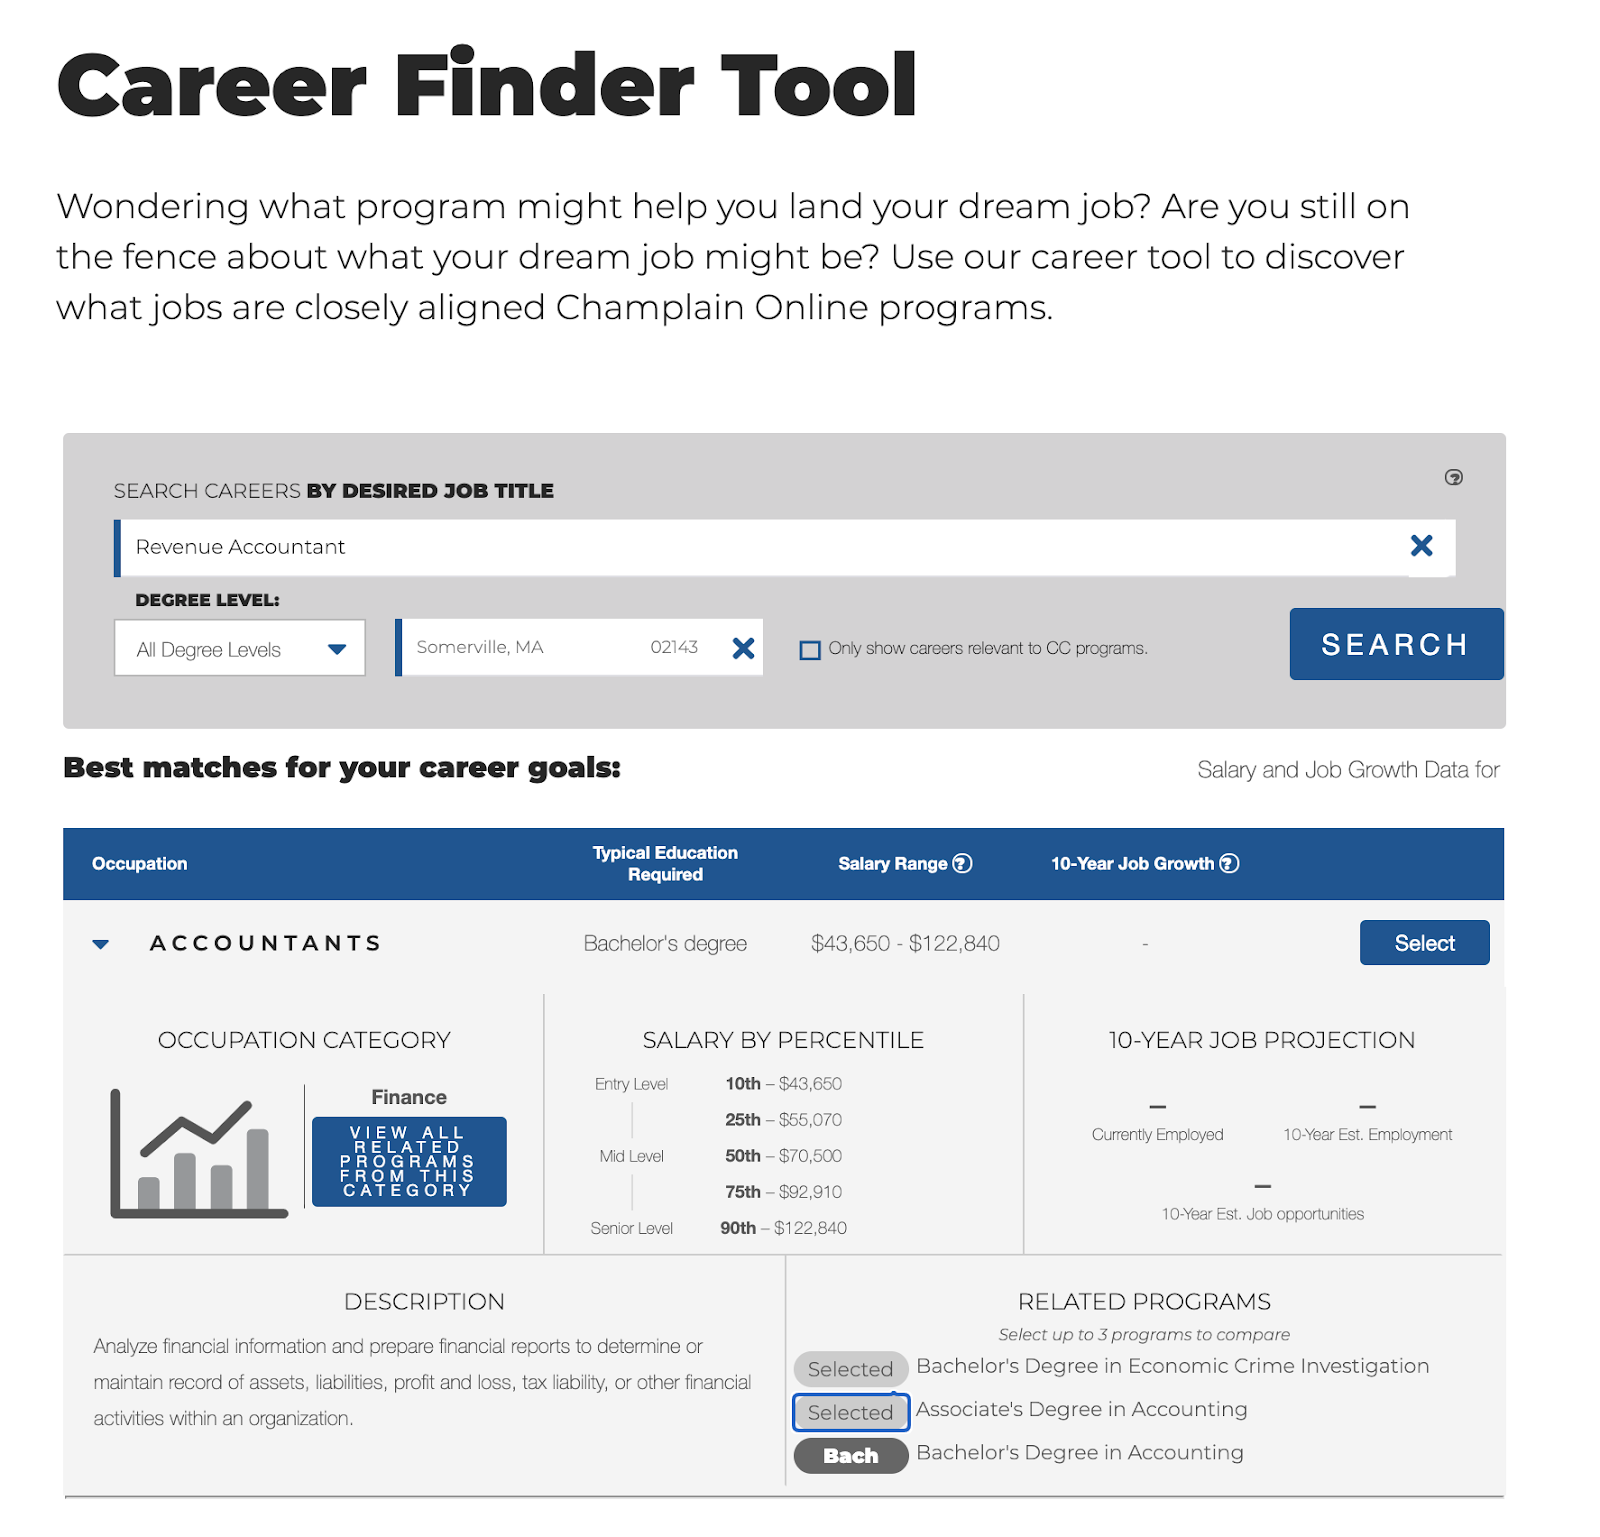 The Champlain College Online Career Finder